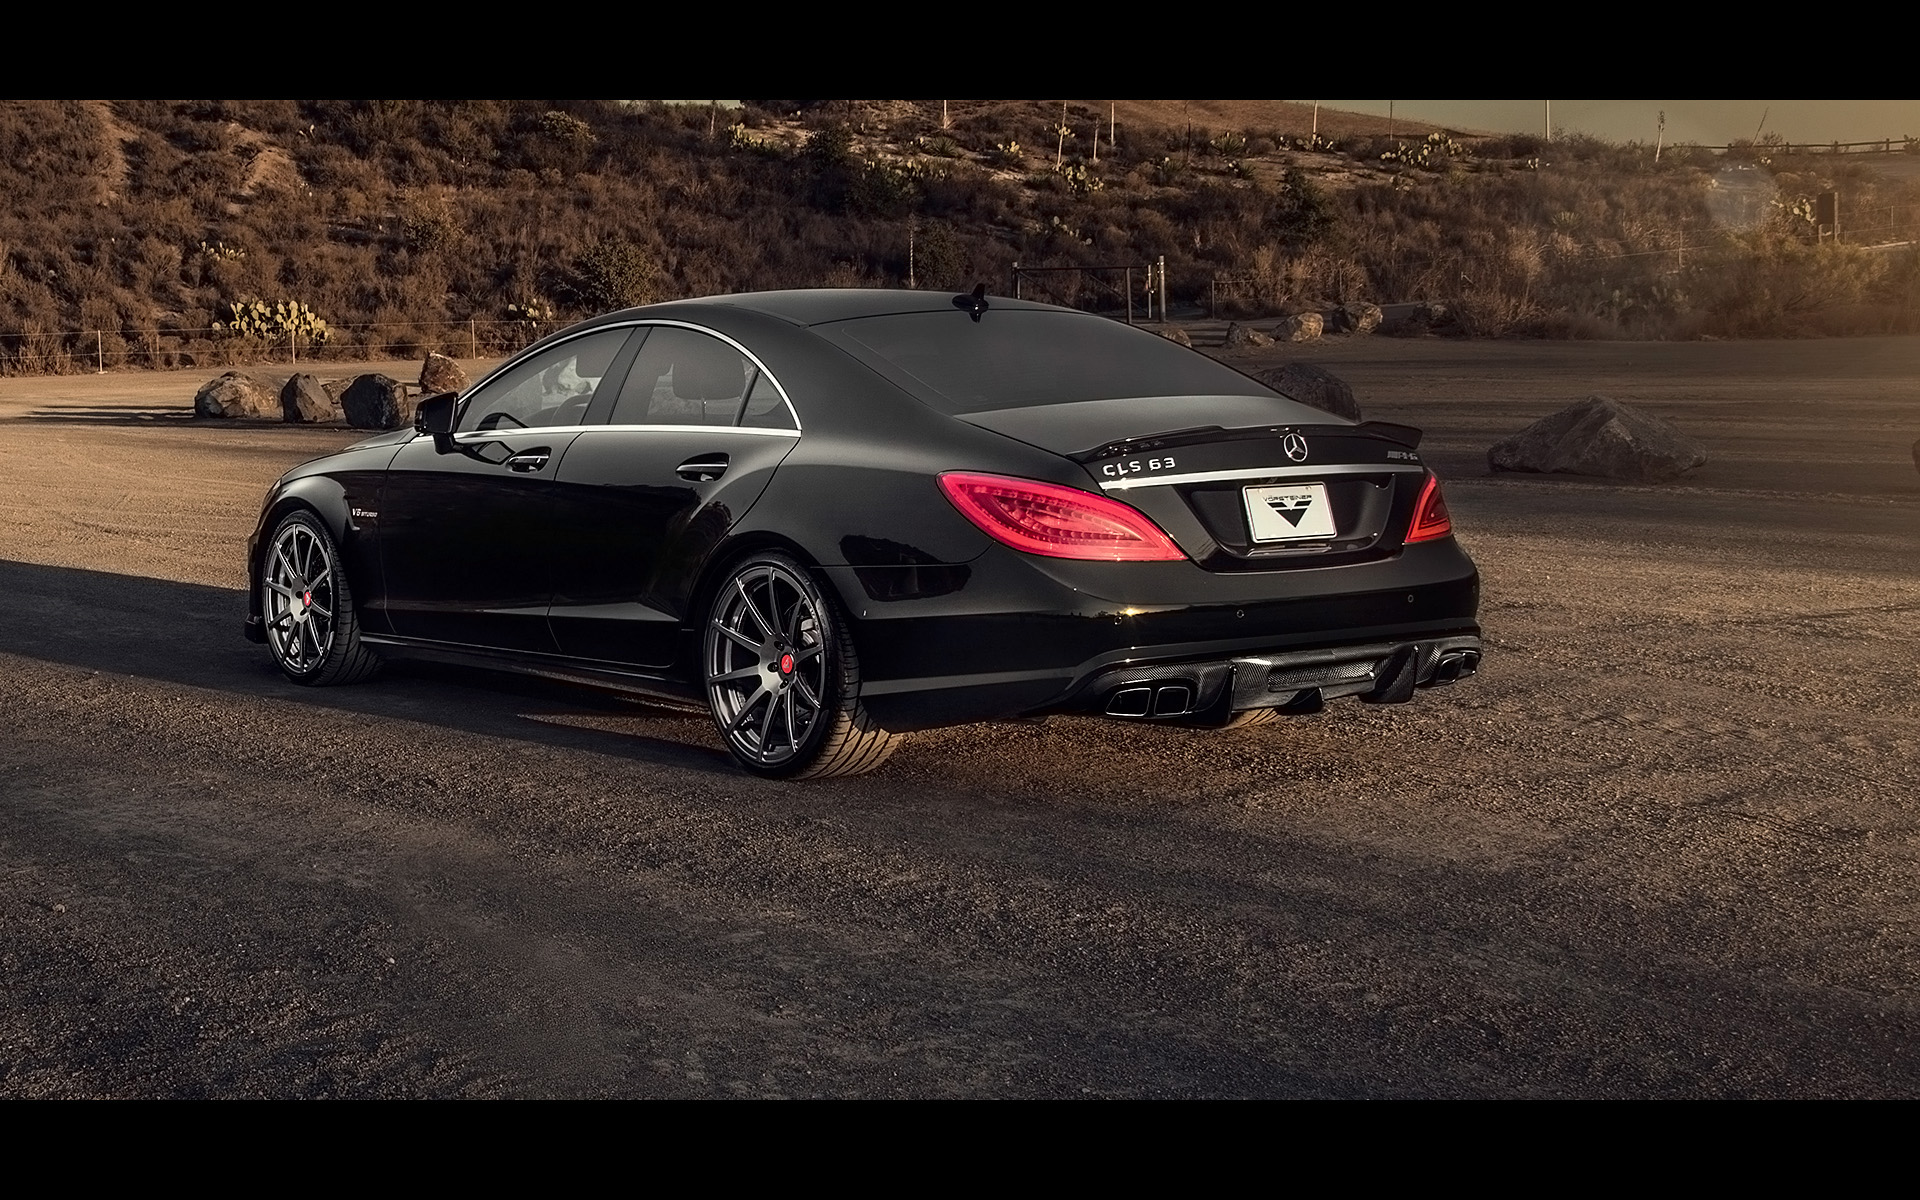 2014 vorsteiner mercedes benz cls63 amg sedan tuning. Black Bedroom Furniture Sets. Home Design Ideas